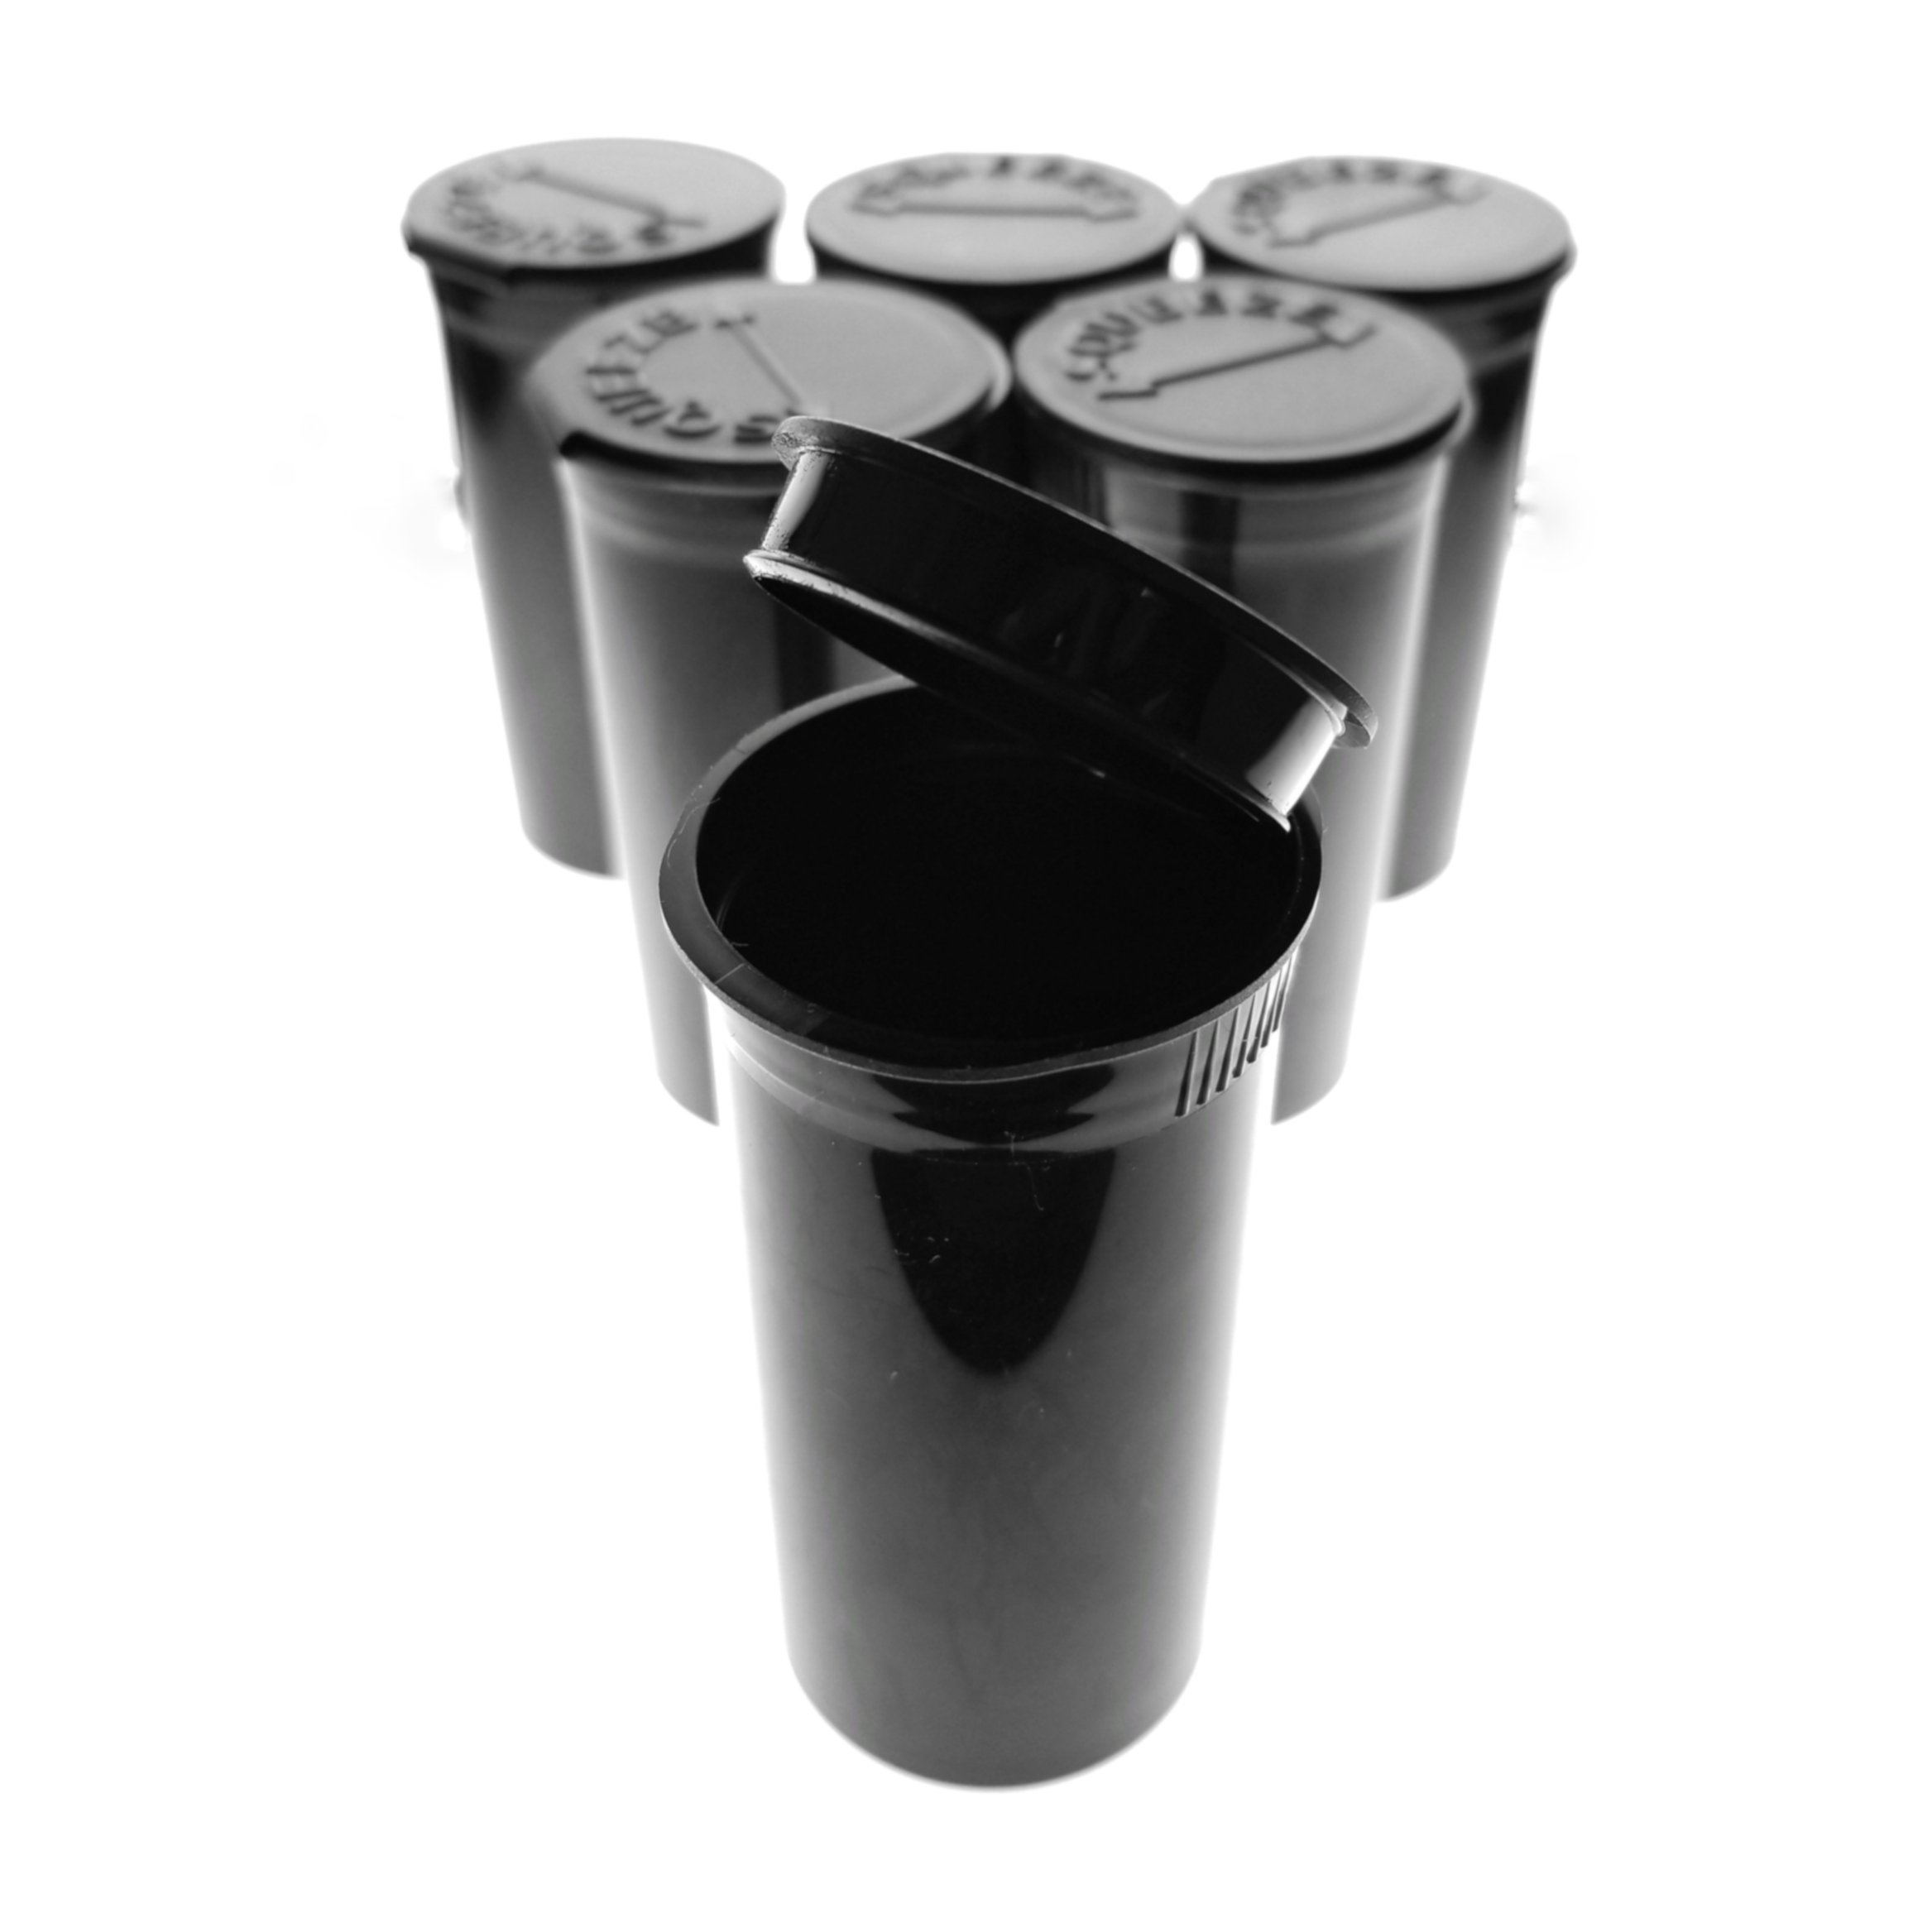 50 Pack of Black 13 Dram Pop Top Bottle Rx Vial Medical Grade Pill Box Herb Container by Van Cave